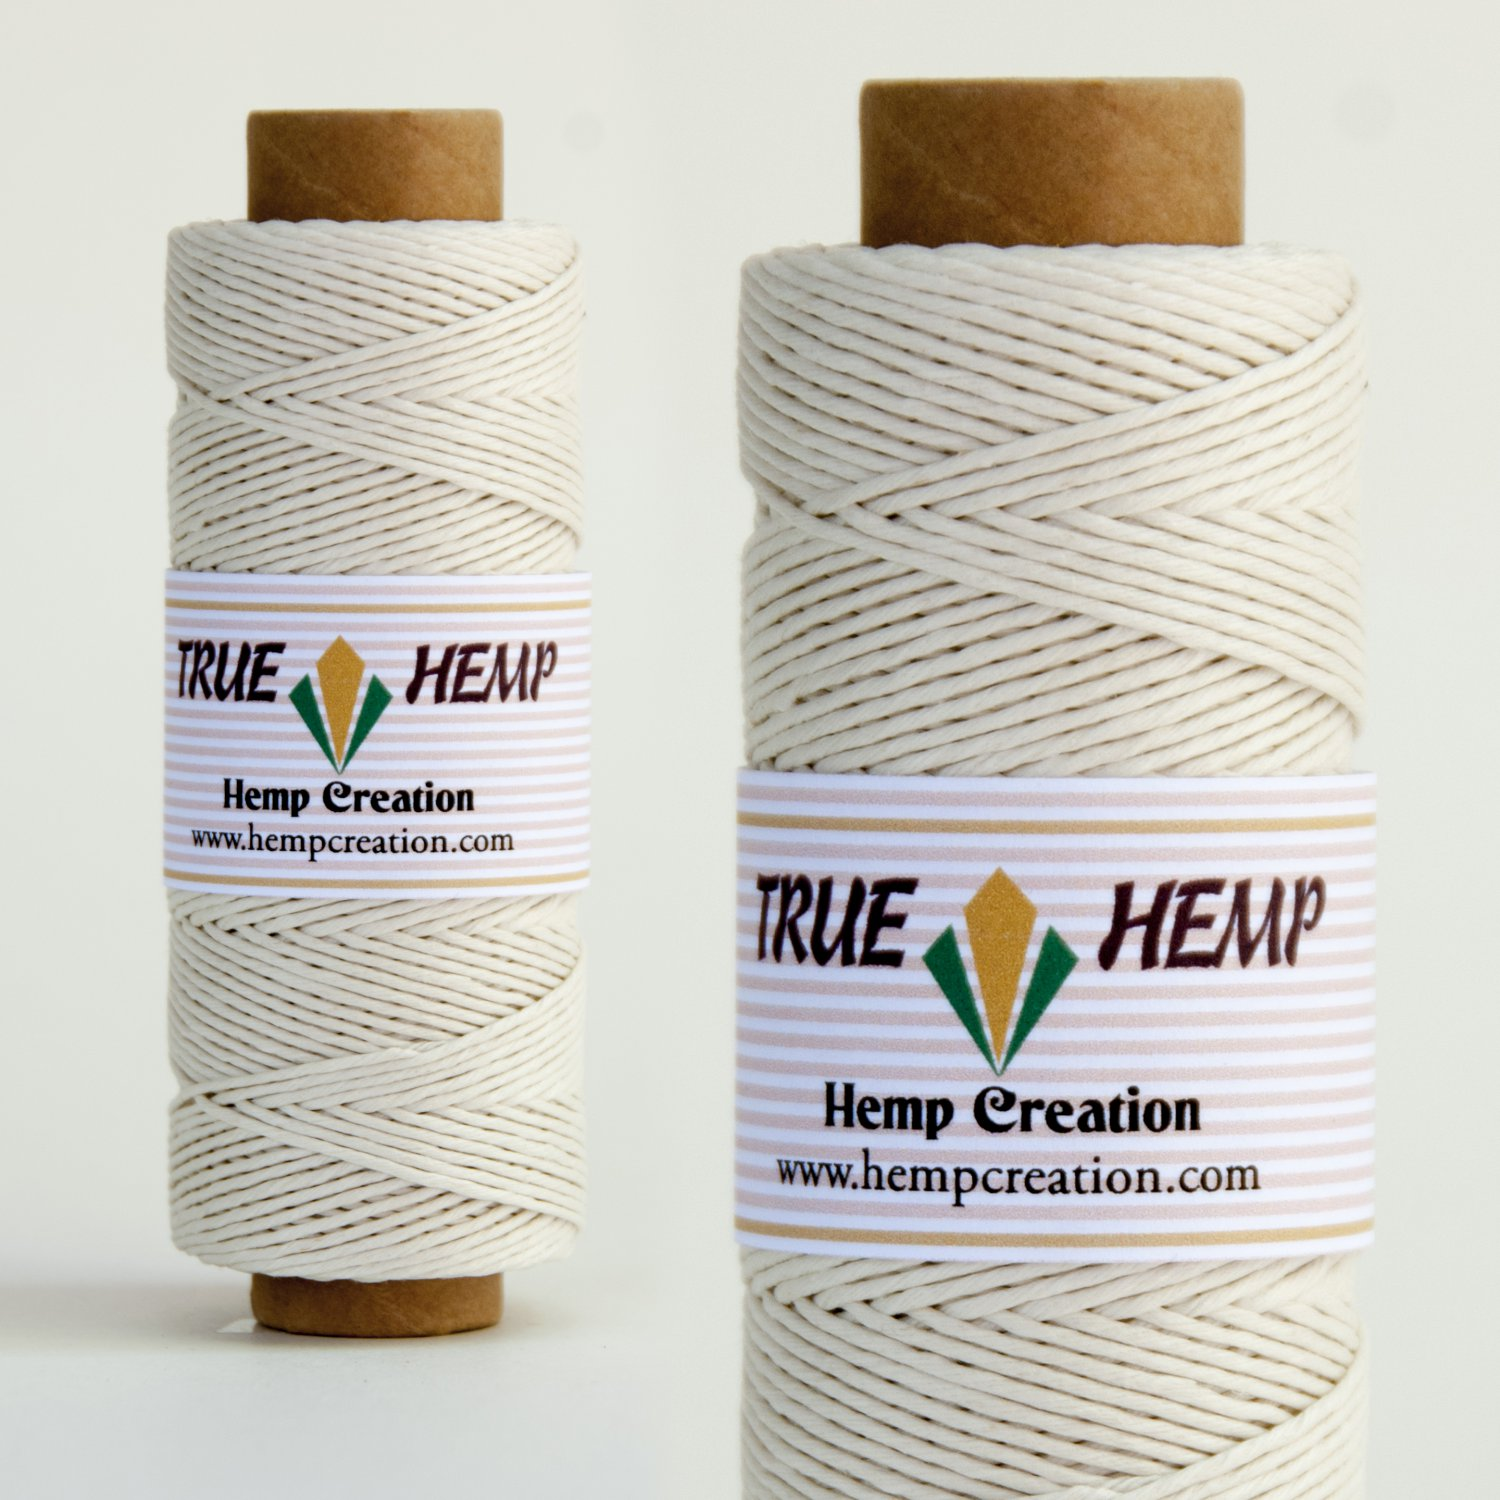 TRUE HEMP spool - WHITE - 1mm diameter 20lb - 205feet/62m - 50gram